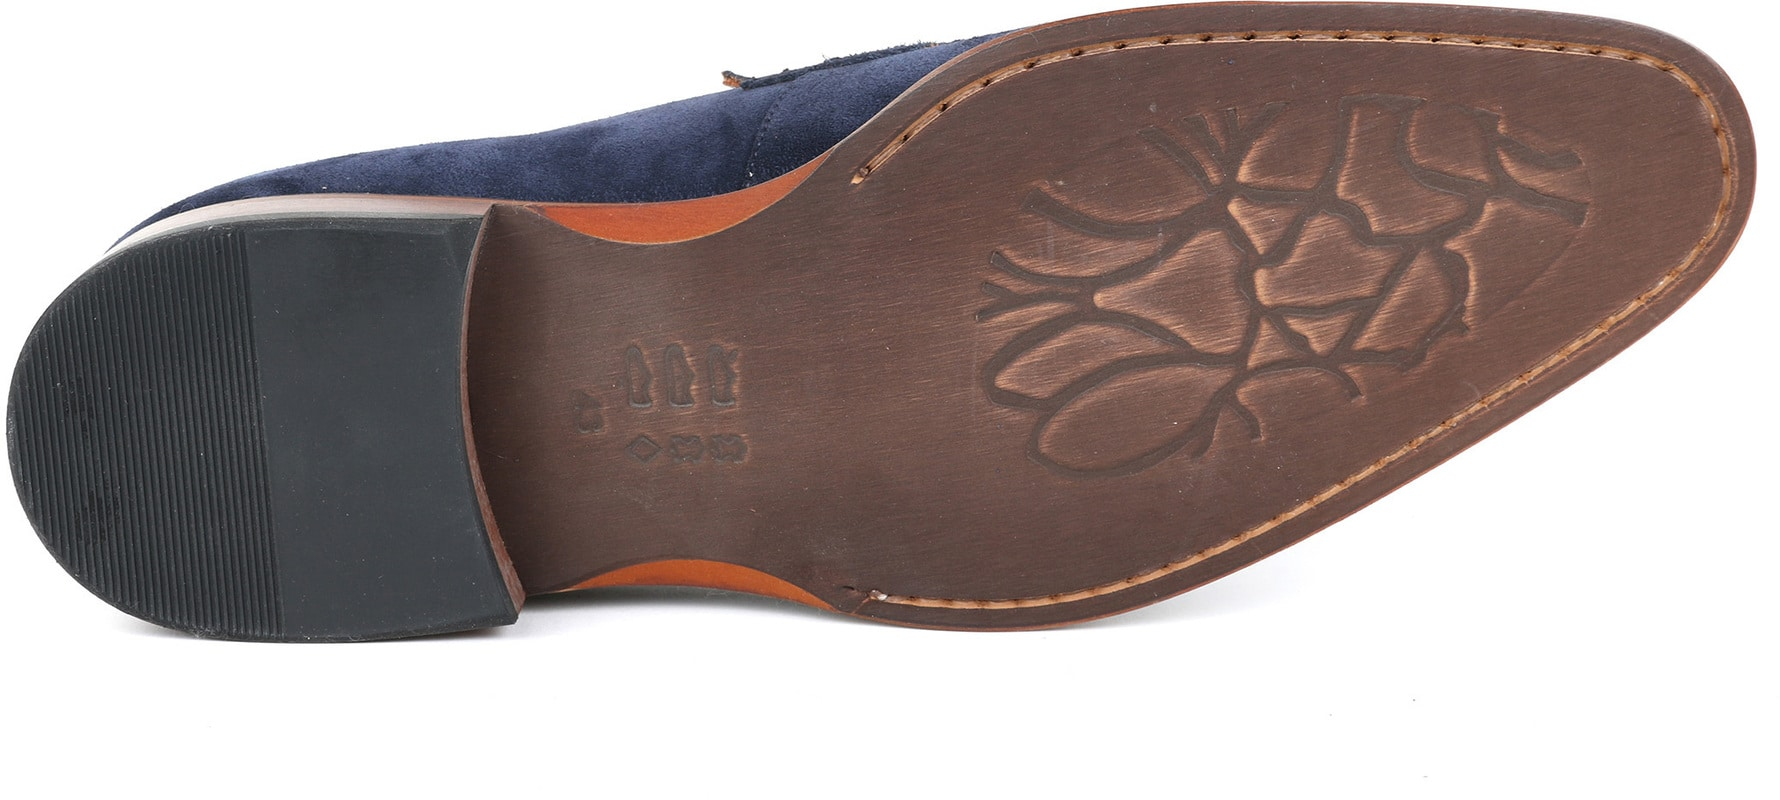 Suitable Loafer Suede Navy foto 4